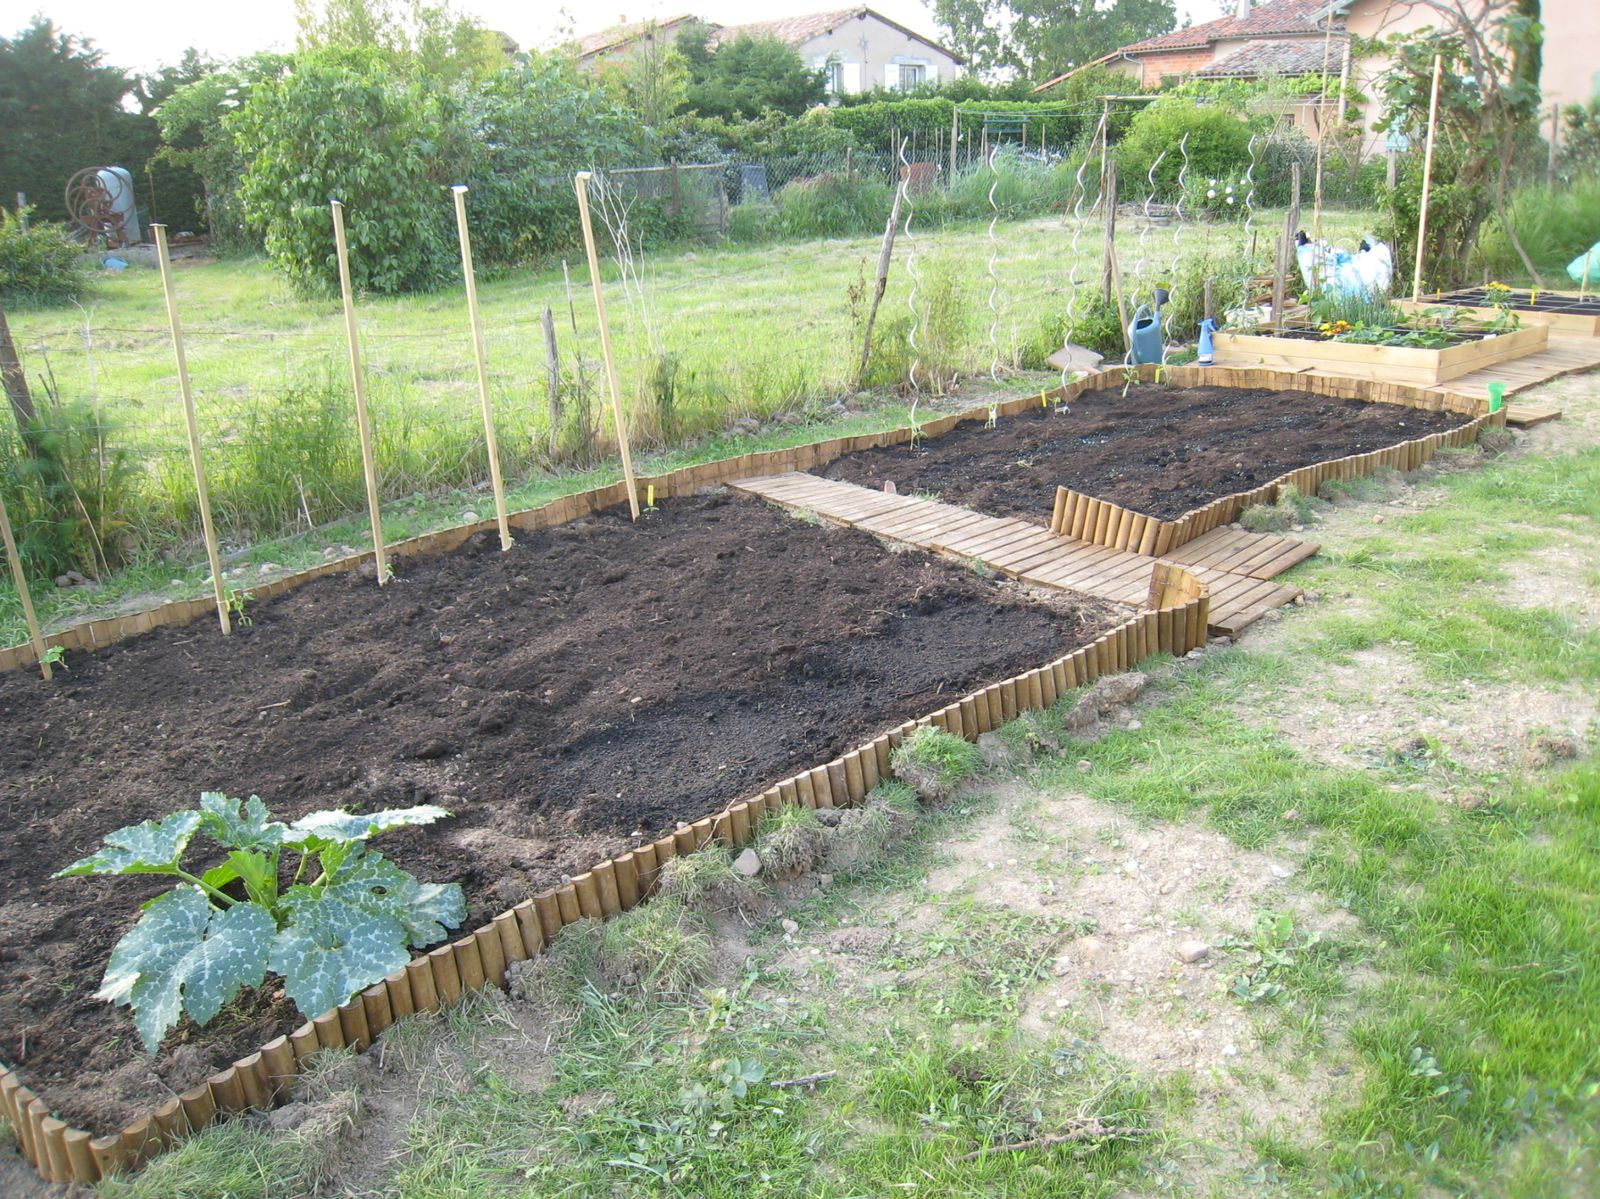 Am nagement du jardin potager le blog de nathalie for Amenagement du jardin photo